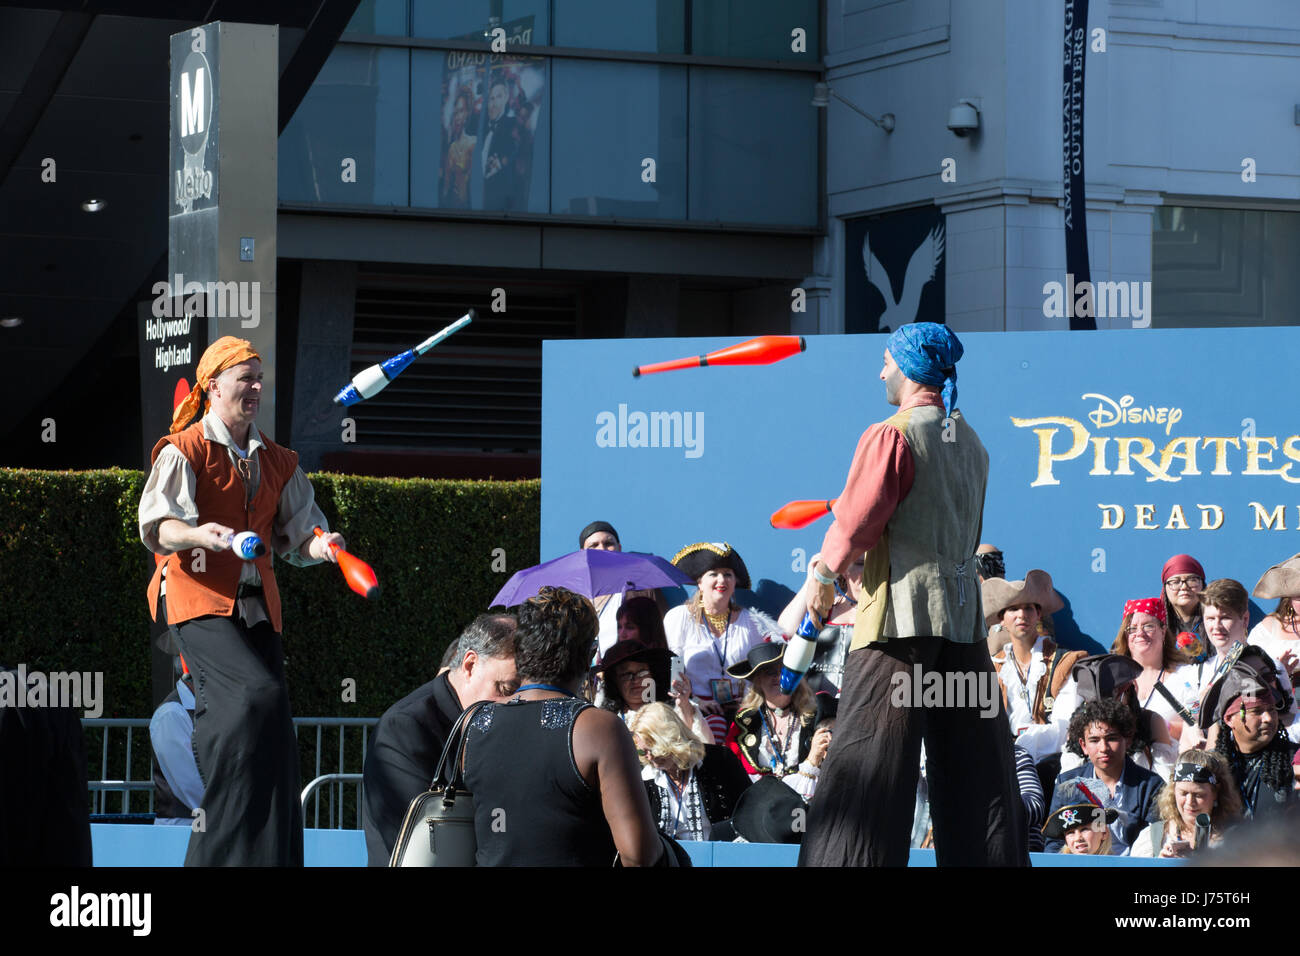 Atmosphere at the premiere of Disney's 'Pirates Of The Caribbean: Dead Men Tell No Tales' at Dolby Theatre - Stock Image